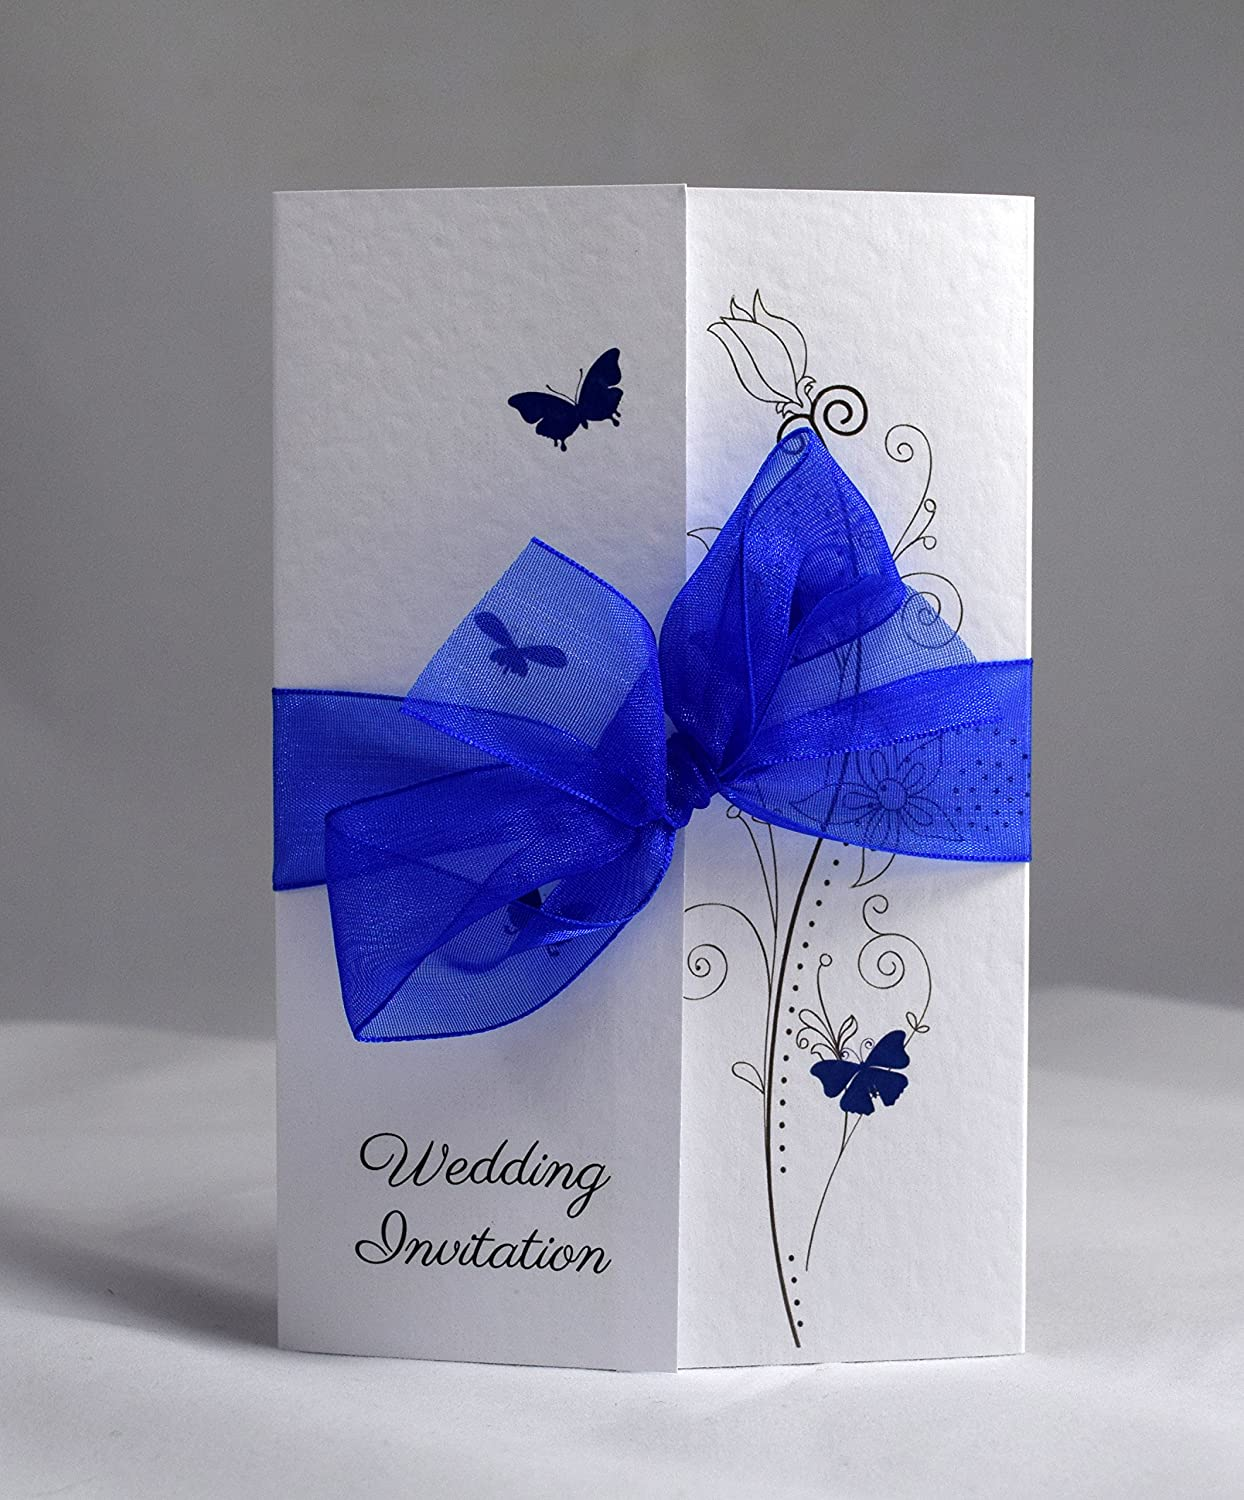 Butterfly Gatefold Wedding Invitations Personalisesd With Ribbon Colour    Royal Blue Organza (Packs Of 10): Amazon.co.uk: Office Products